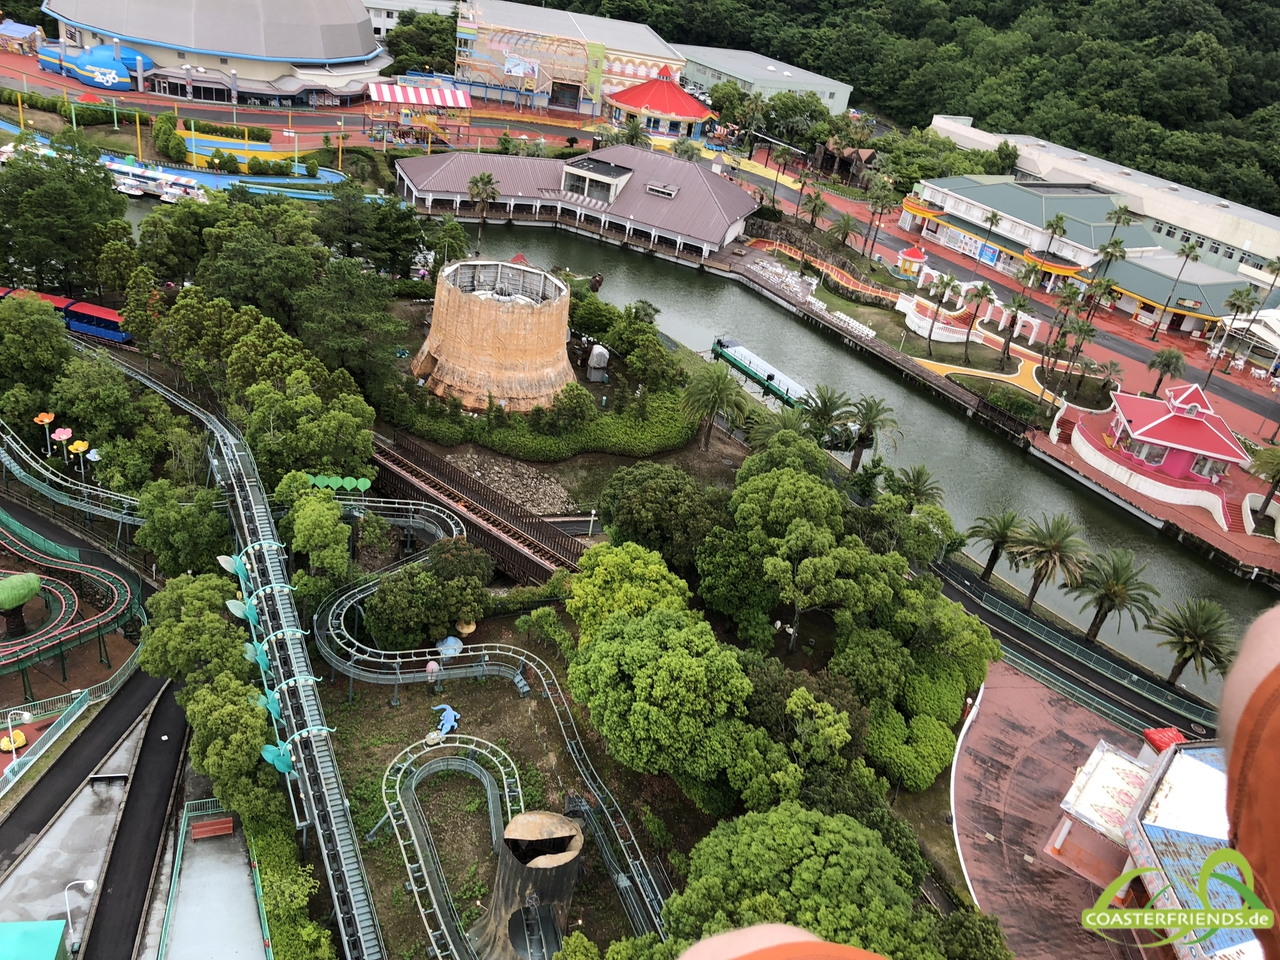 Asien - https://coasterfriends.de/joomla//images/pcp_parkdetails/asien/o1961_new_reoma_world/content2.jpg